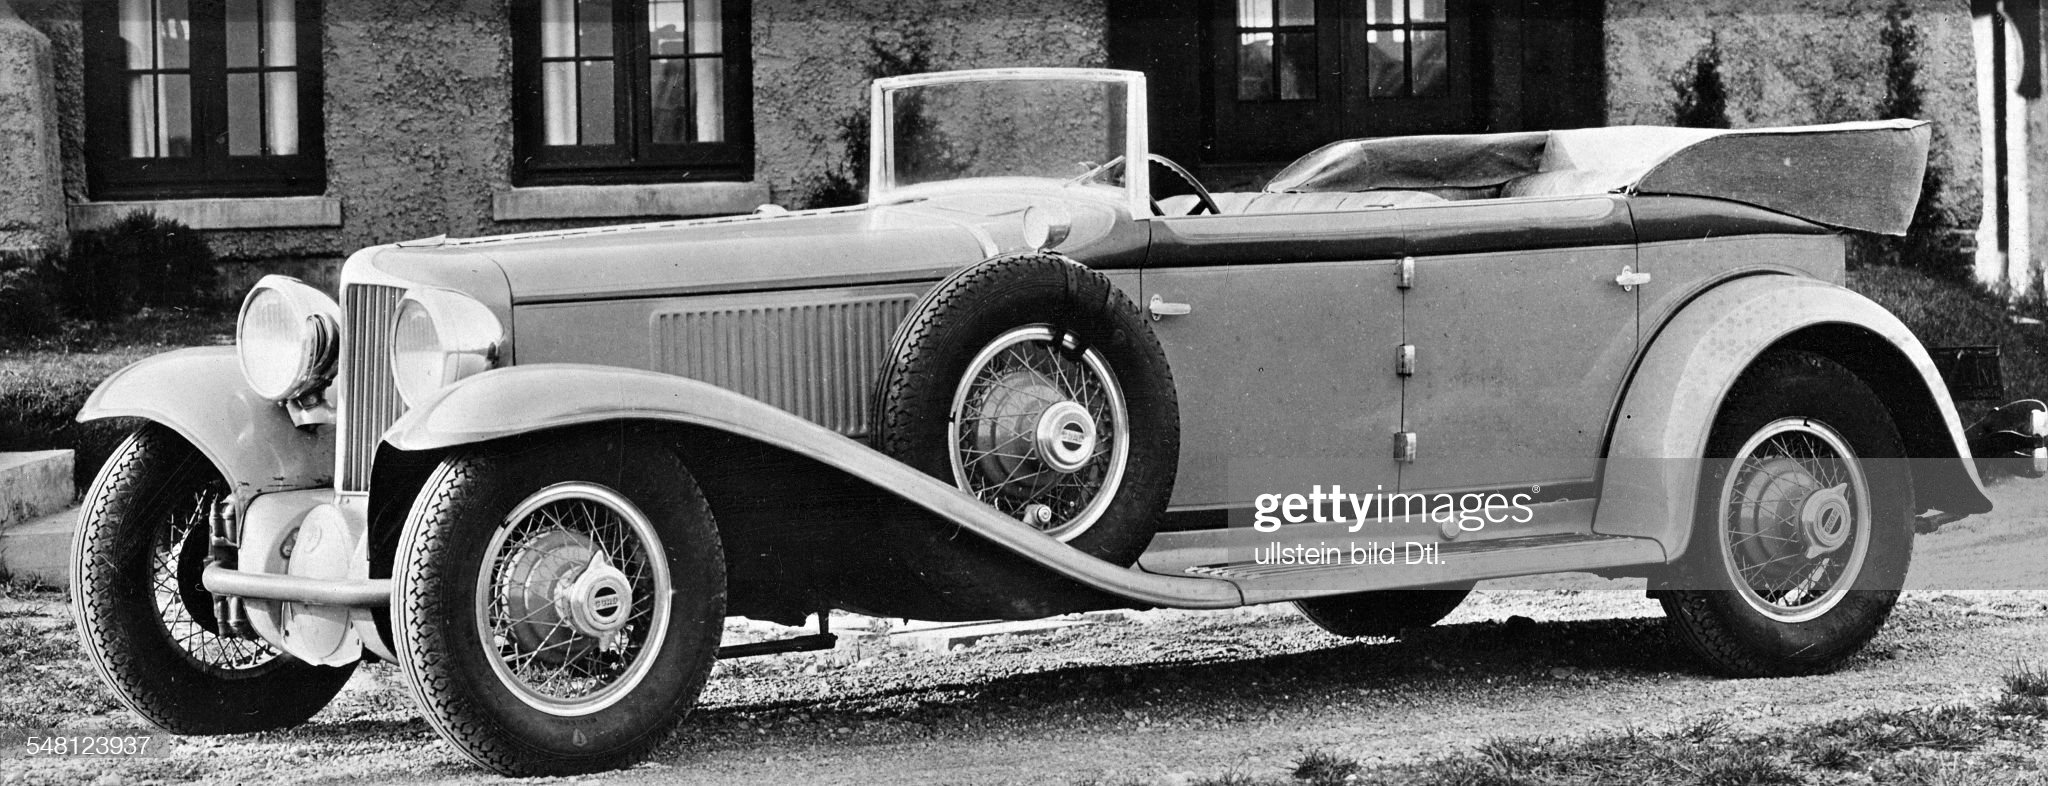 USA : Convertible Auburn car with front-wheel drive - 1929 - Published by: 'Die Dame' 25/1929 Vintage property of ullstein bild : News Photo